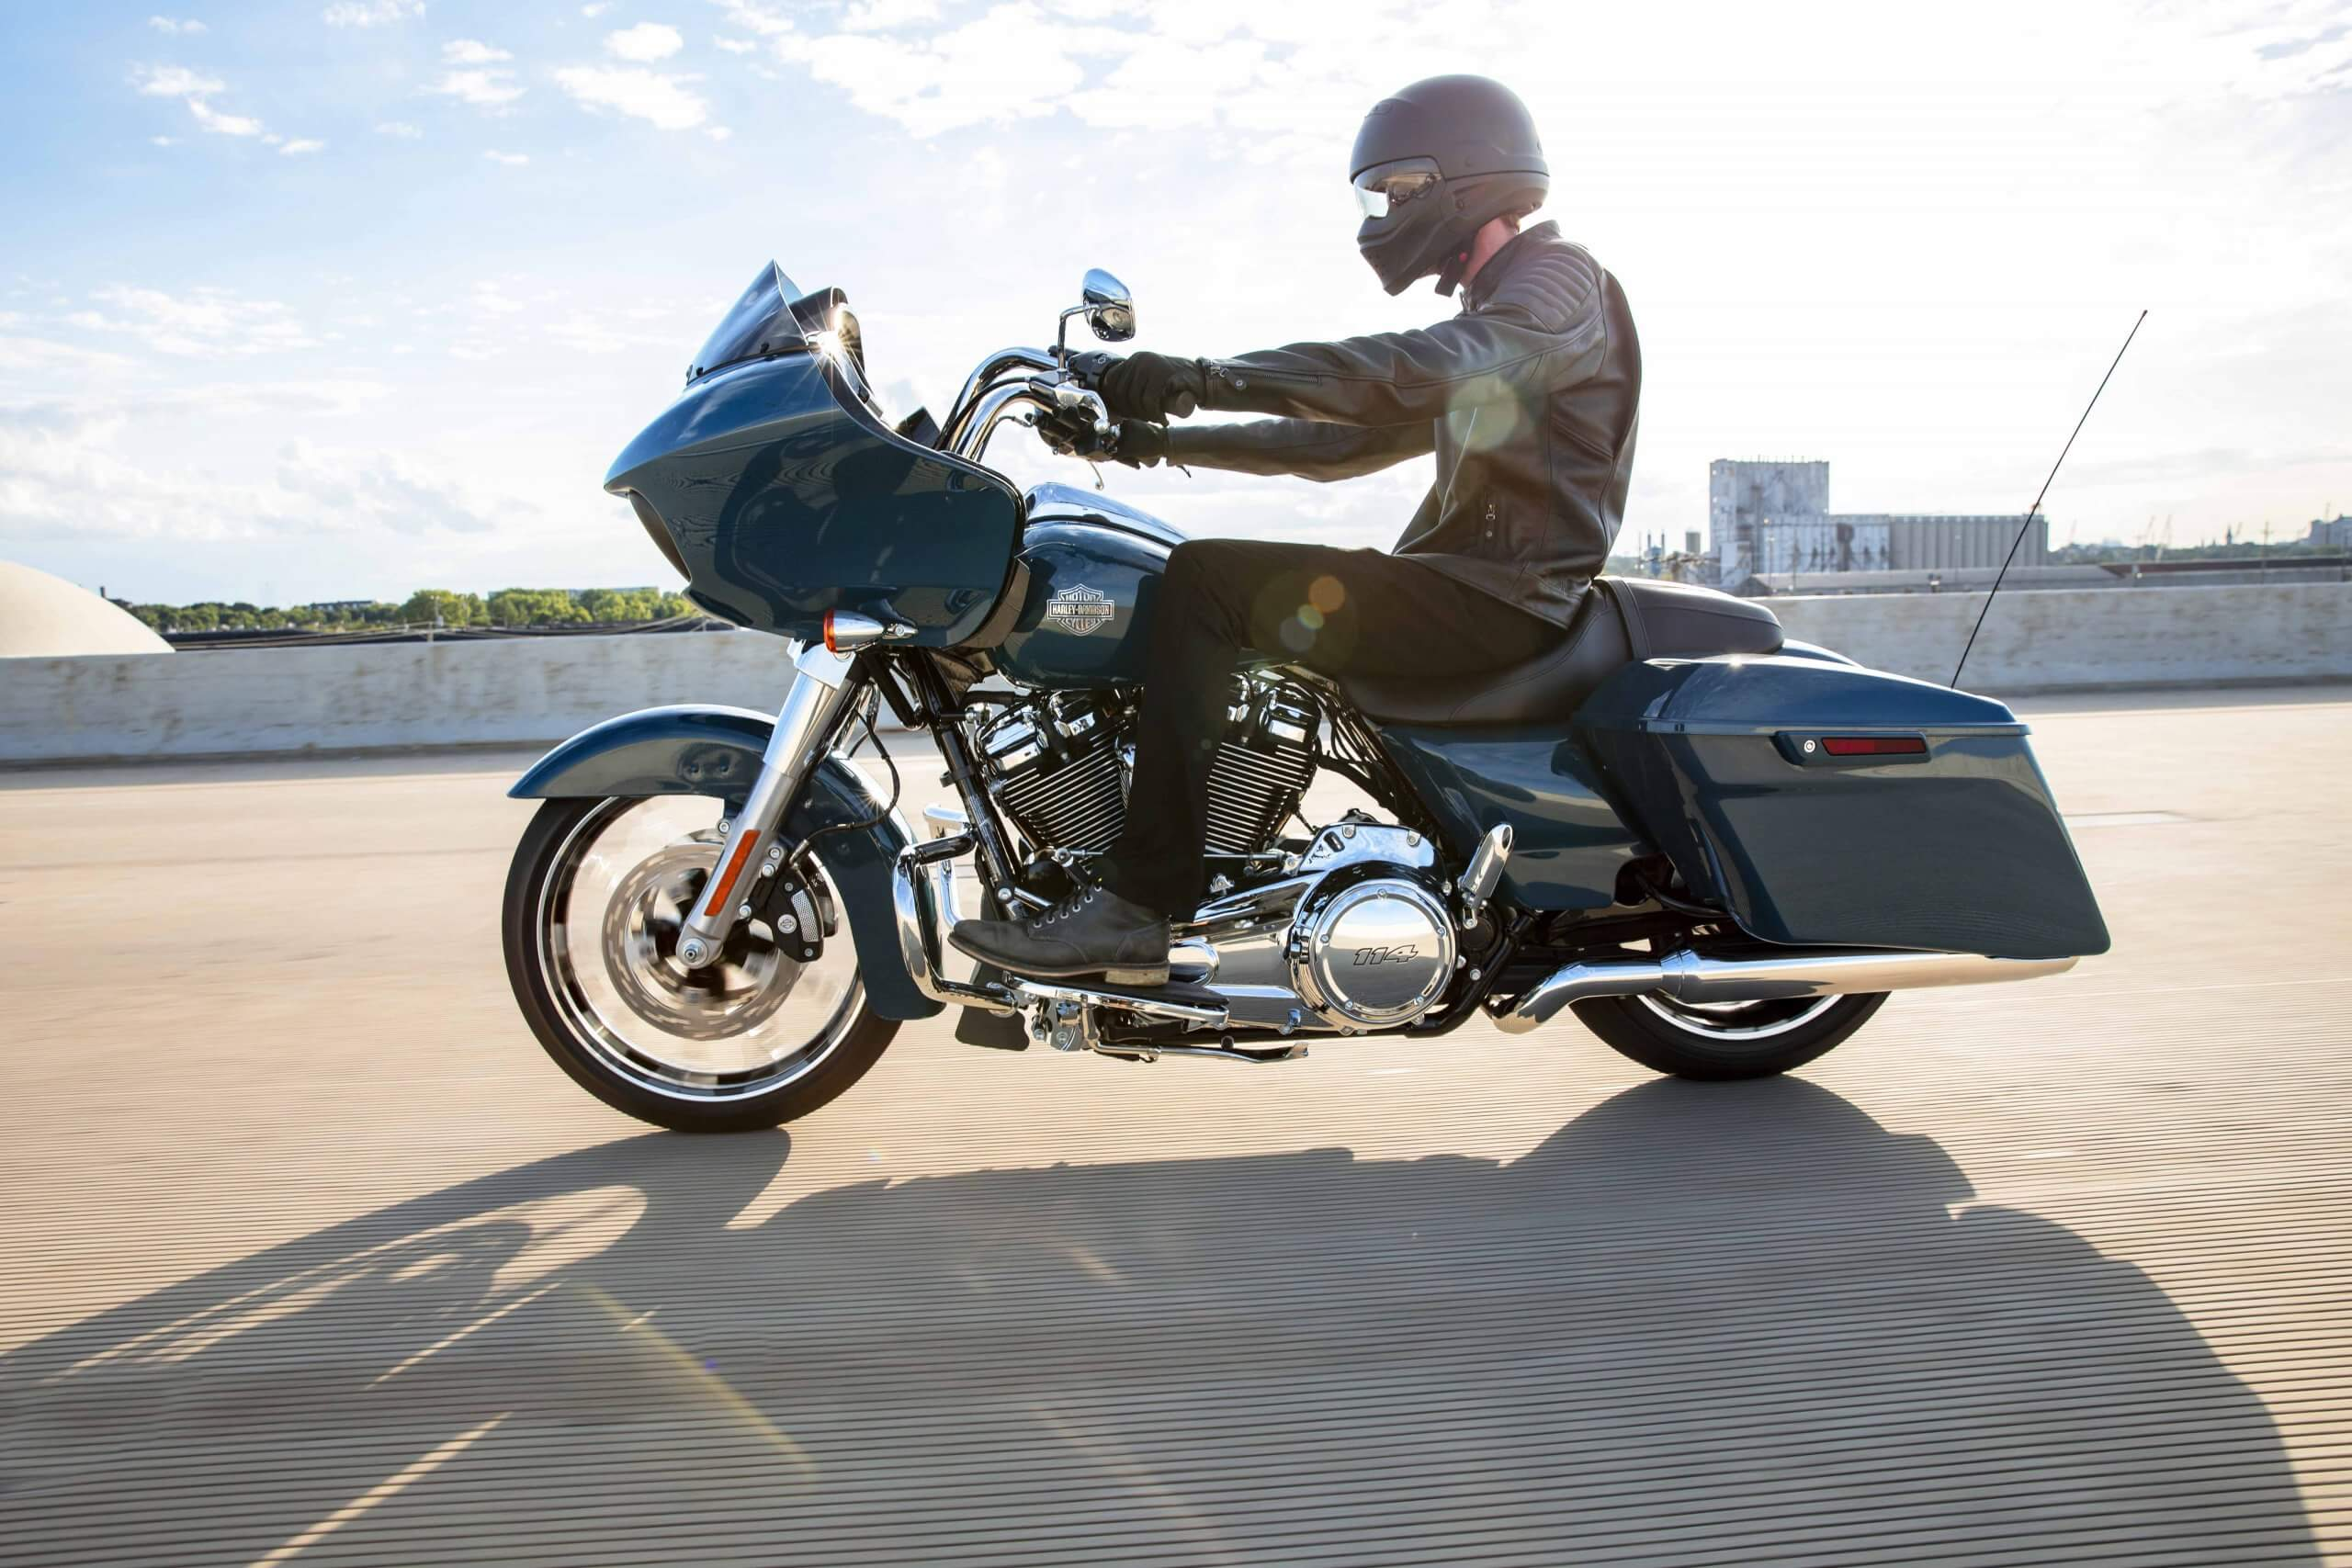 Milwaukee-Eight® 114 V-Twin engine and sharknose fairing